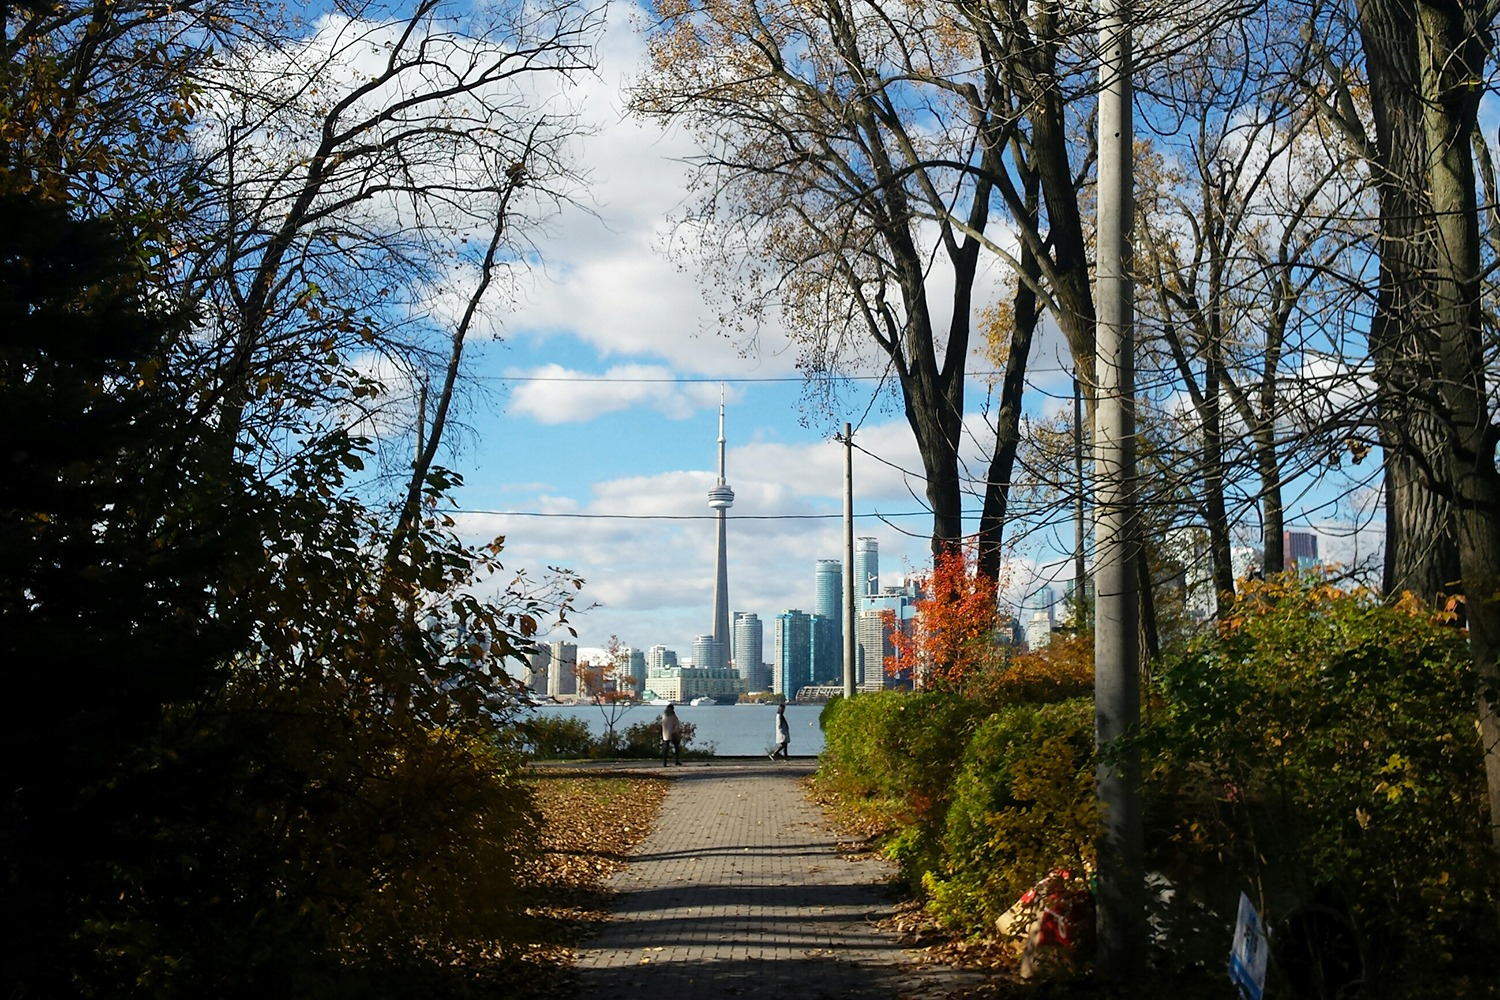 The view of the CN Tower and downtown Toronto from the Islands. (Photo credit Linda Rosenbaum)